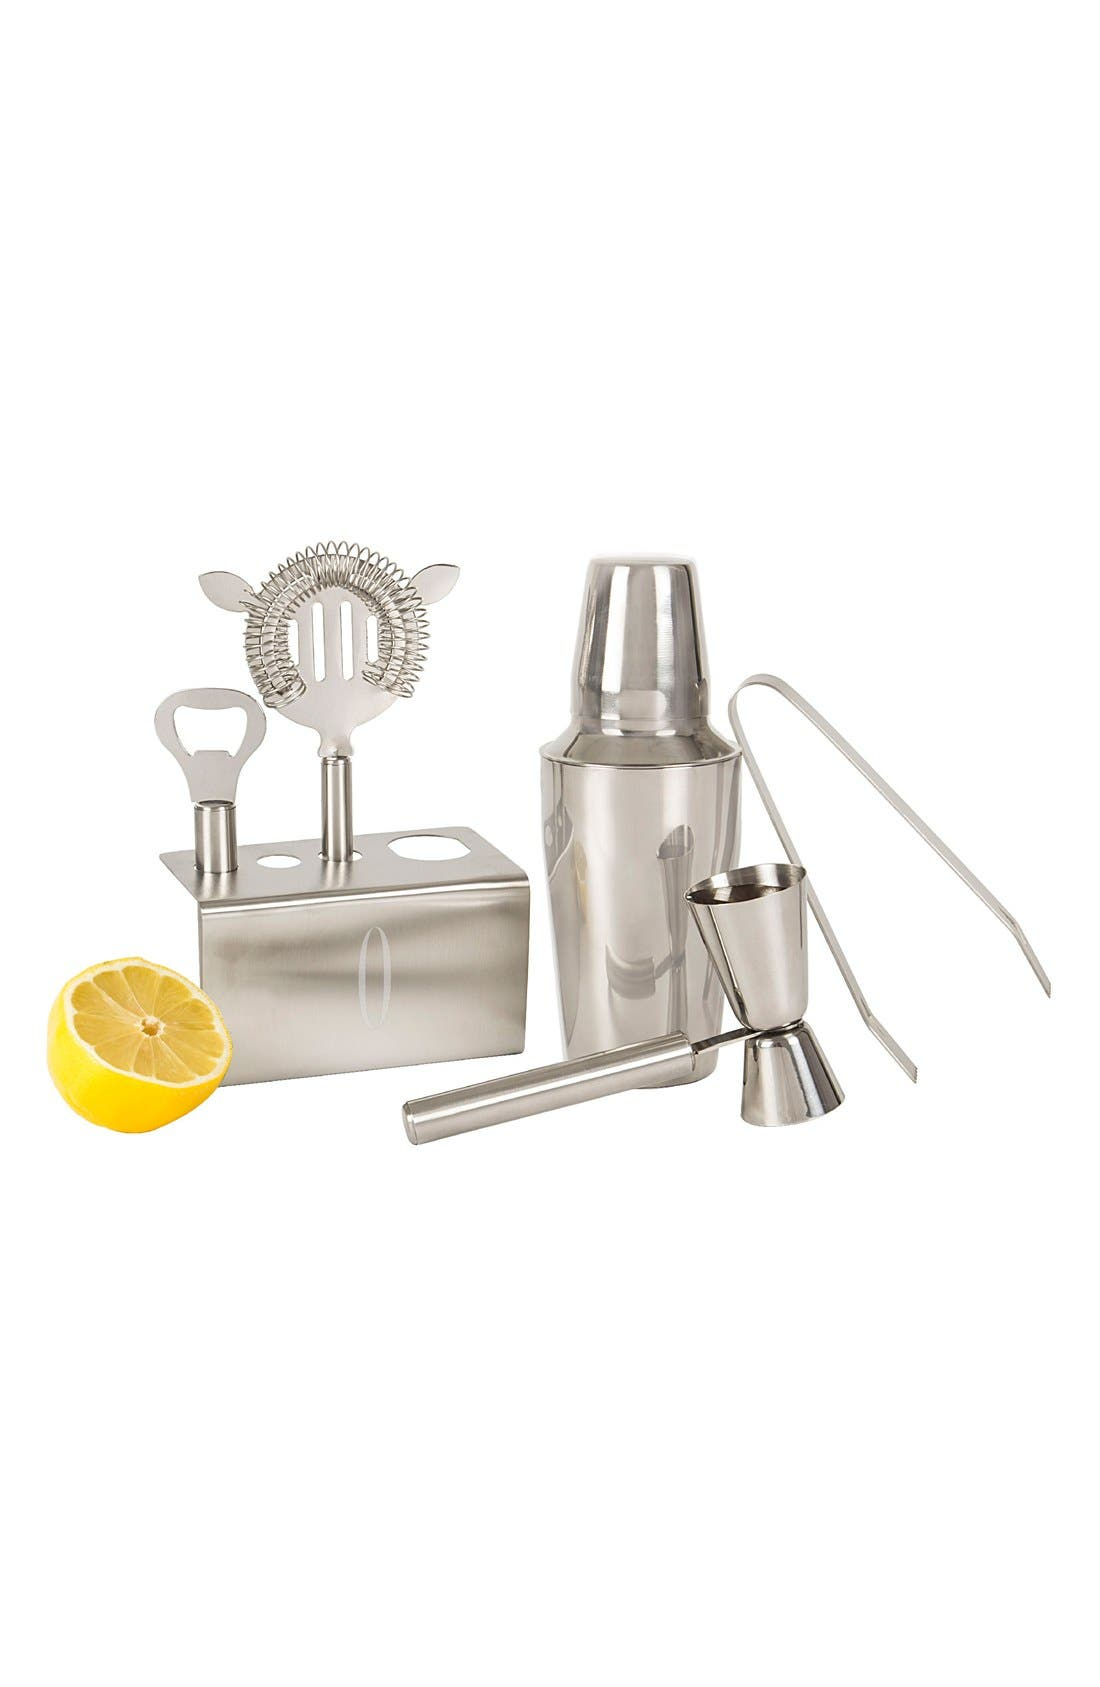 Main Image - Cathy's Concepts Monogram Stainless Steel Mixology Set